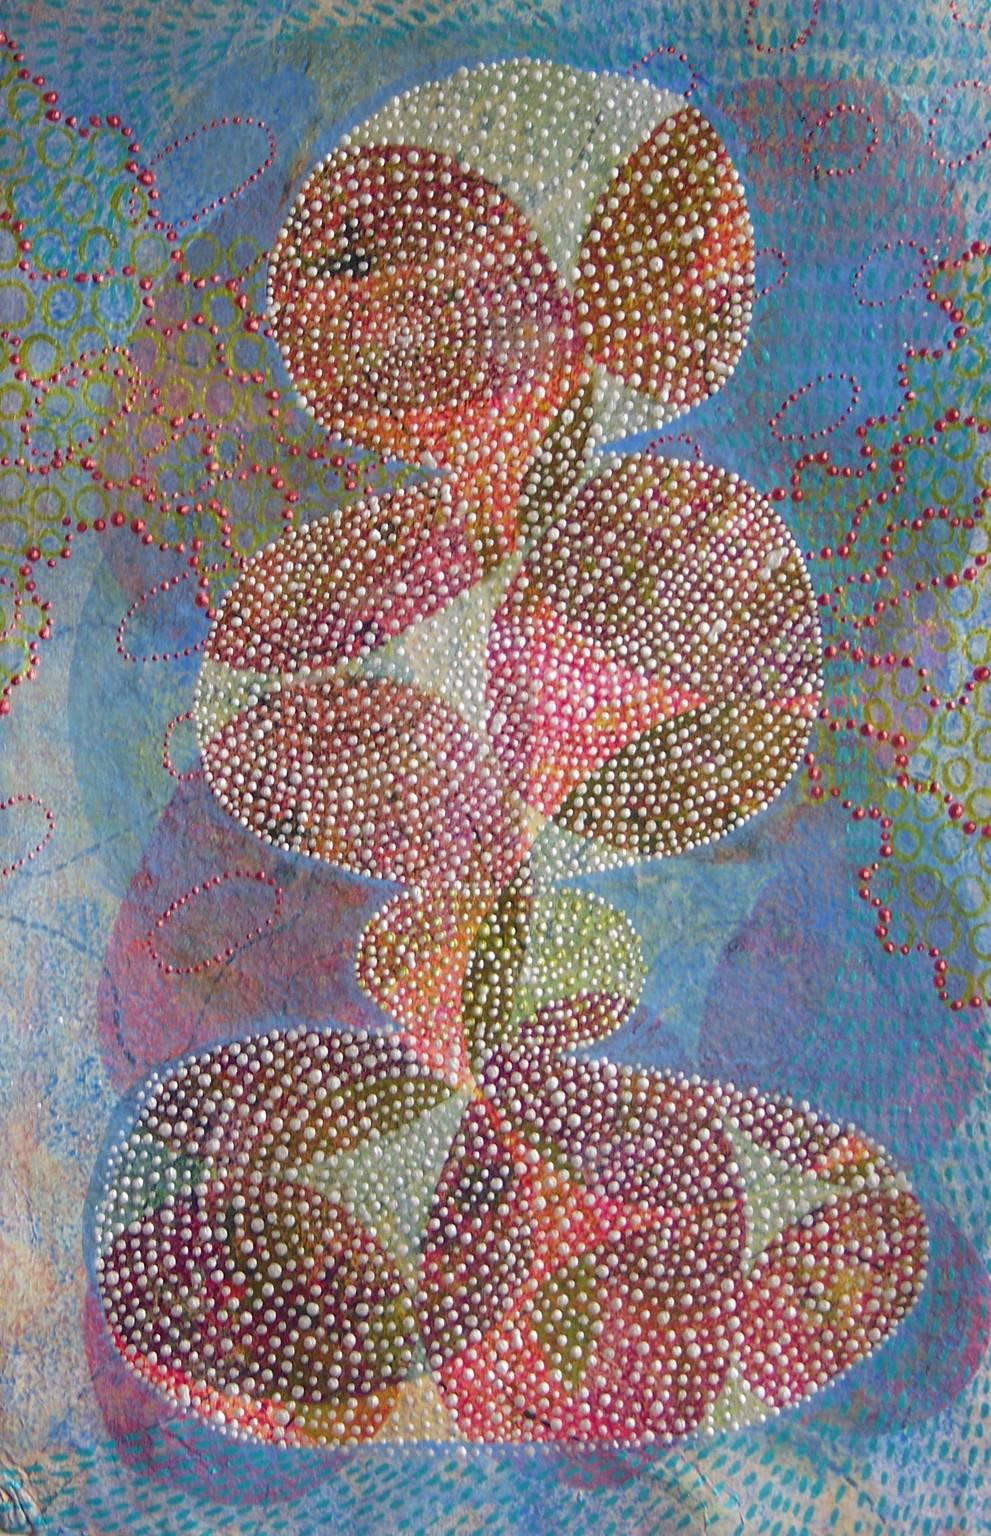 """""""Inner Garden 26"""", abstract, acrylic painting, blues, reds, white, dots"""